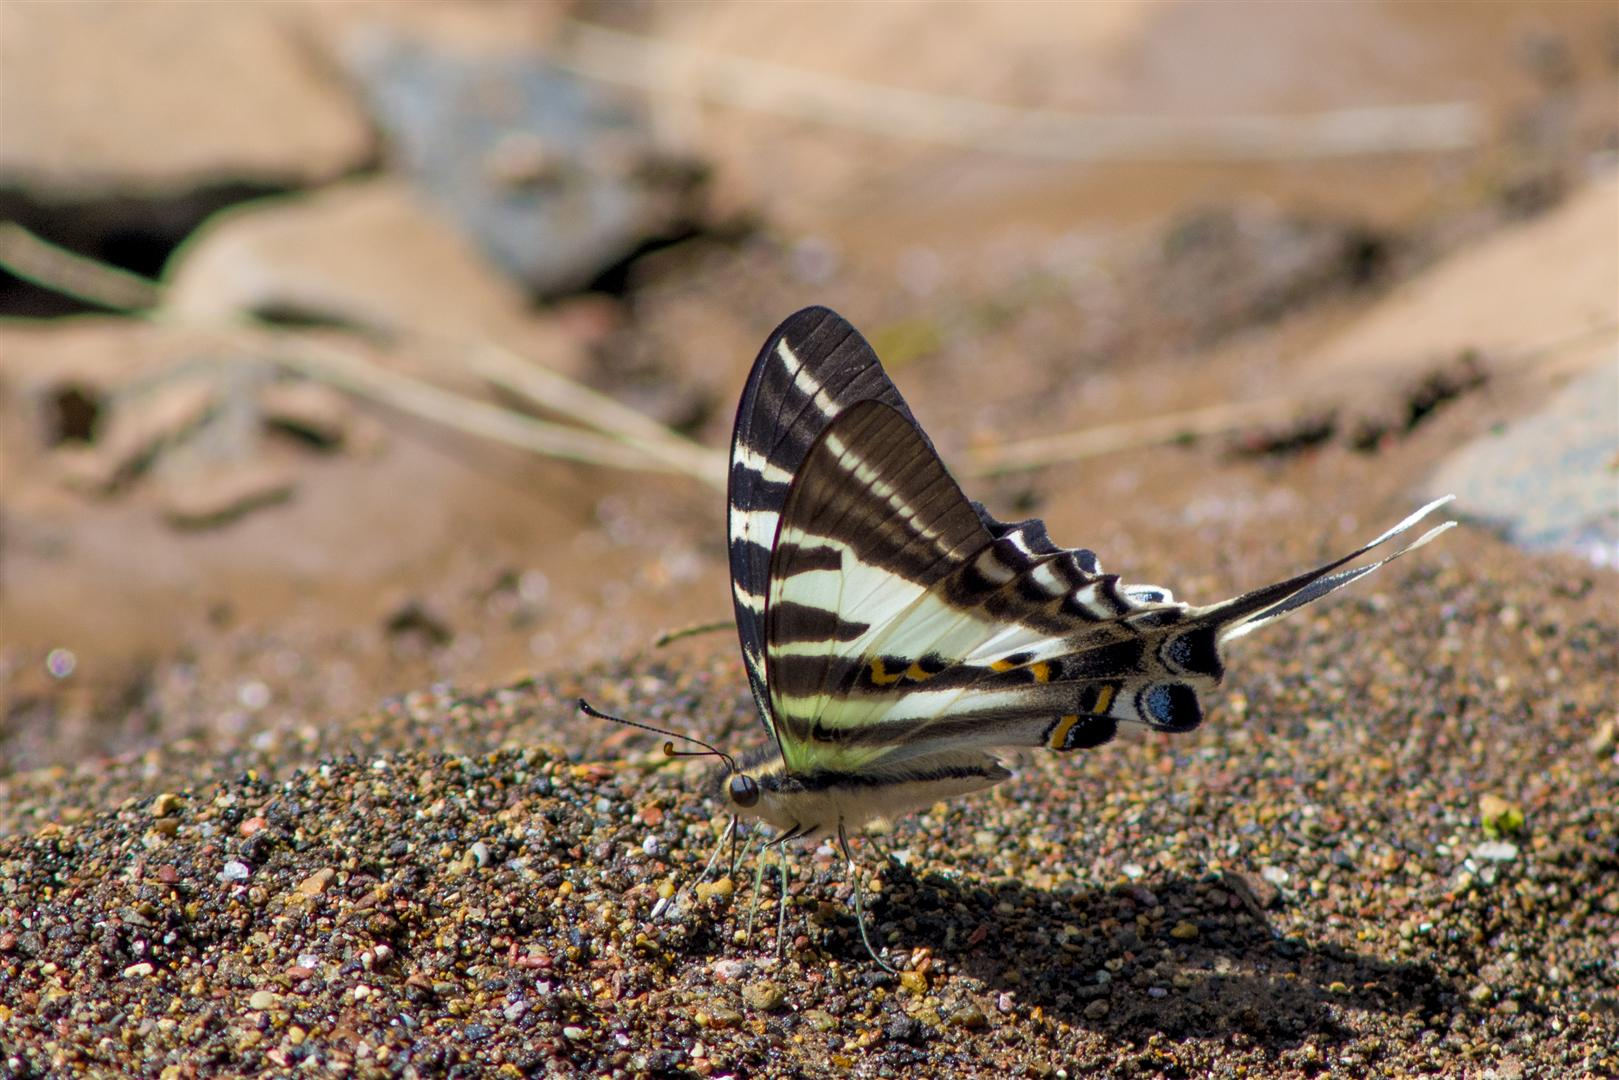 Dragonfly trip with Rod Hosbon, Al Young, Mark Weaver and Harry Ashdown. Redwood Park, Toowoomba. Four-barred Swordtail, Protographium leosthenes.